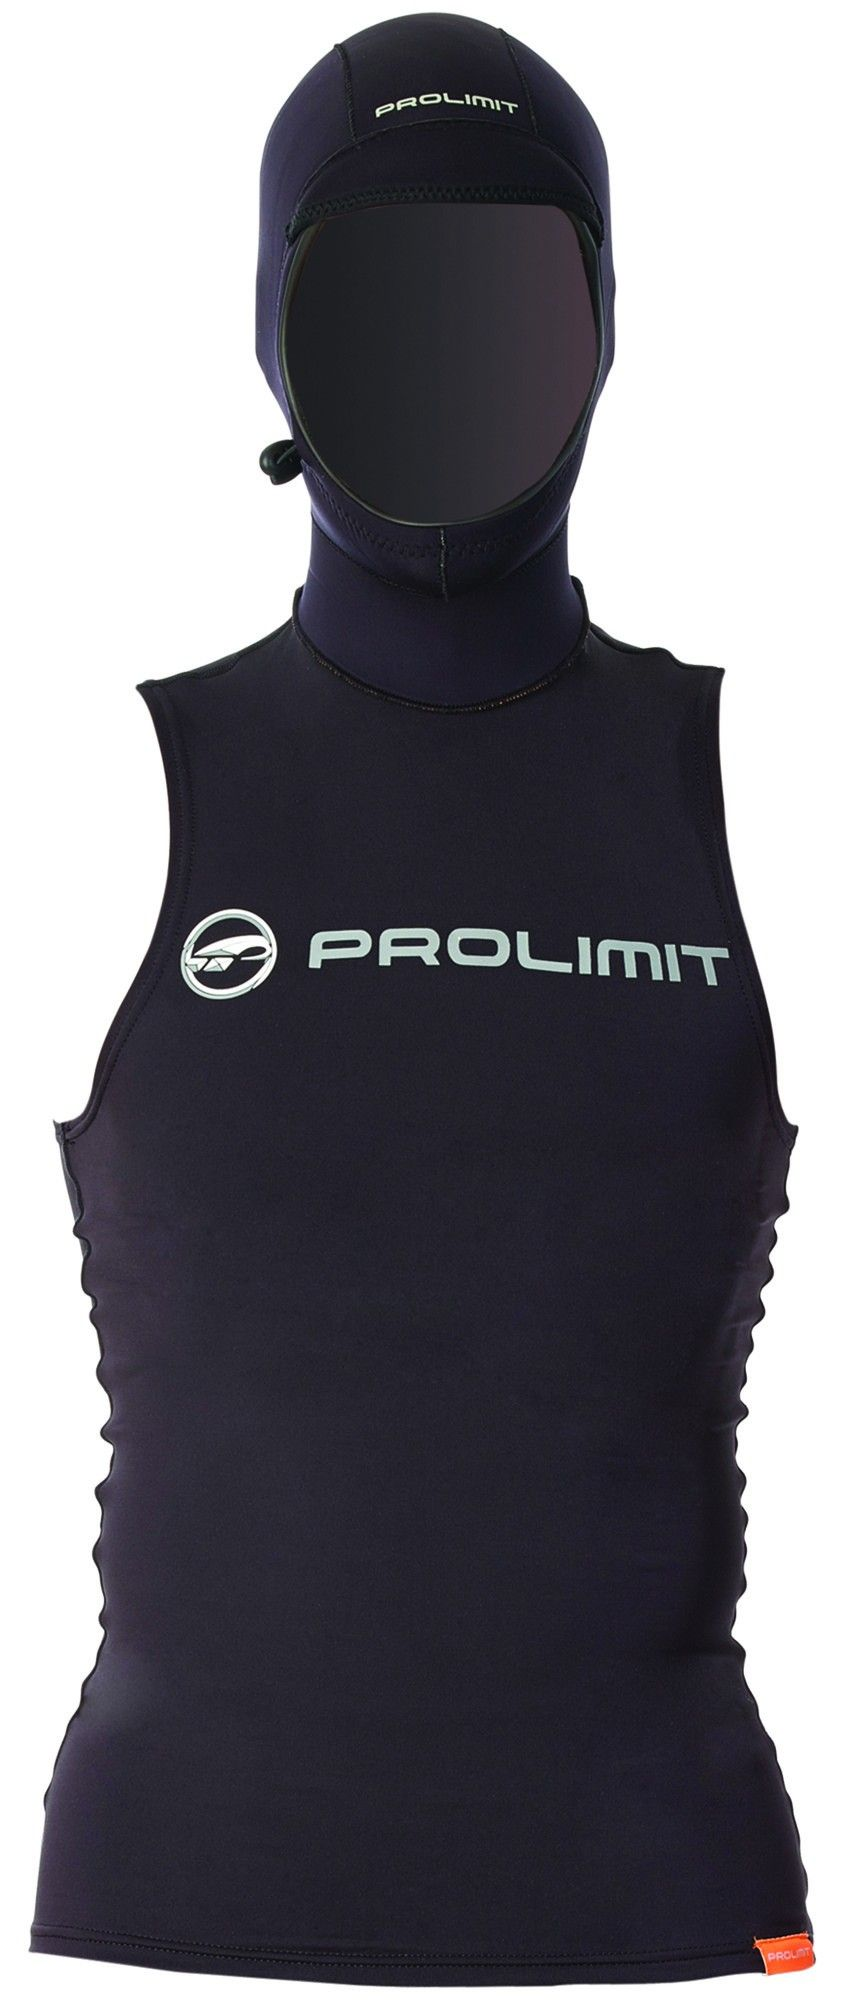 Prolimit Innersystem 1st Layer Top Hooded vest